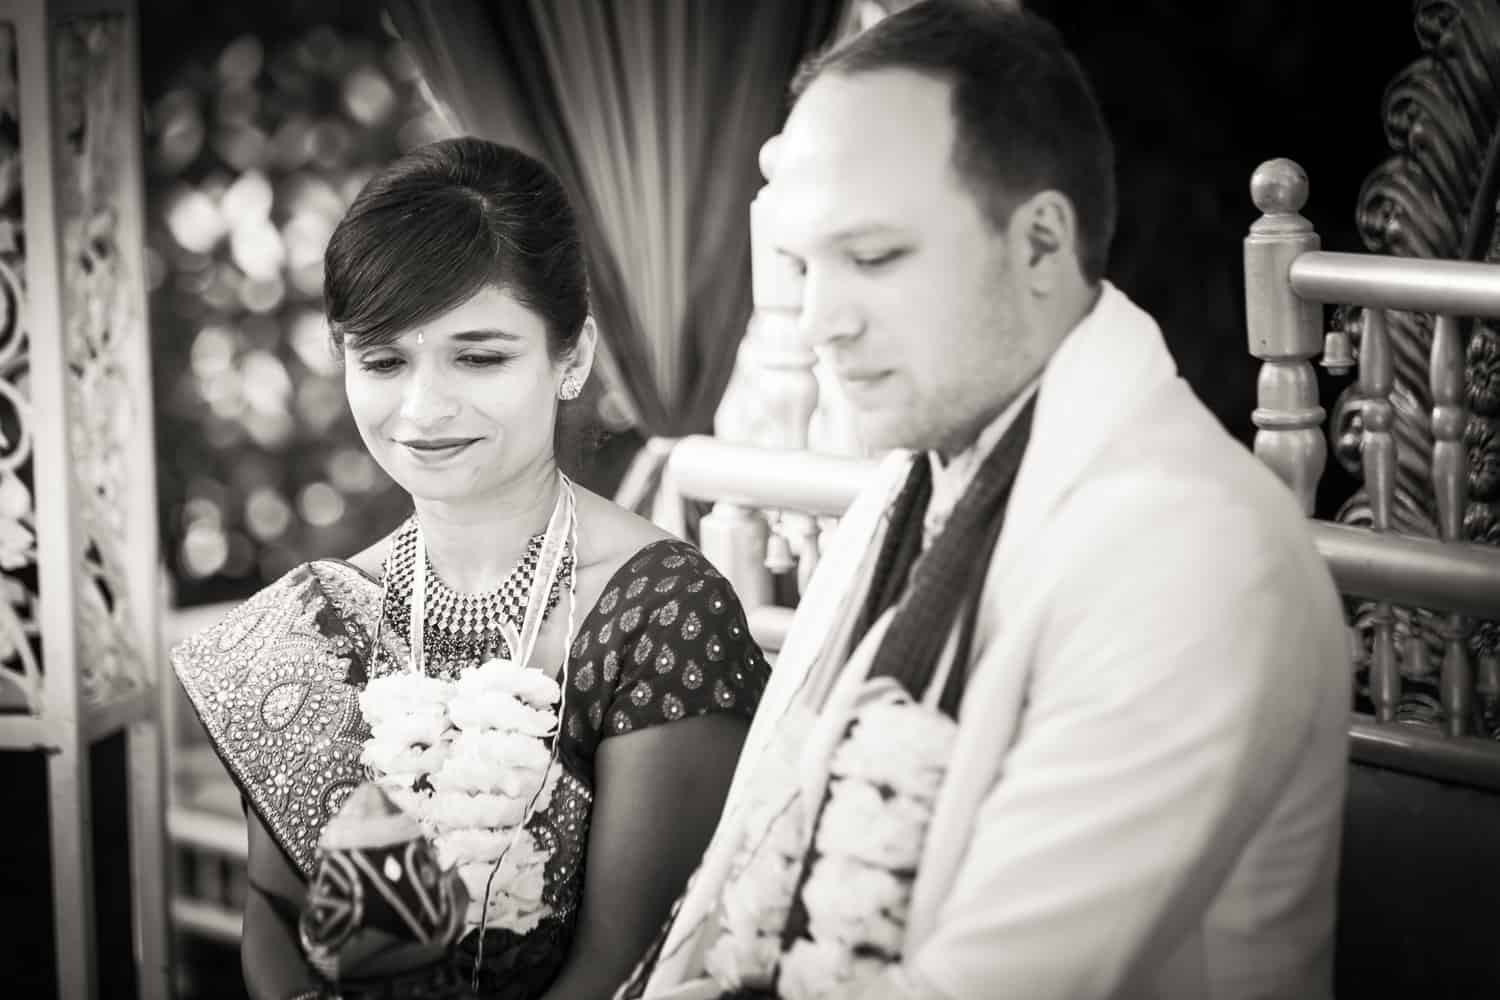 Black and white photo of bride and groom during traditional Hindu wedding ceremony